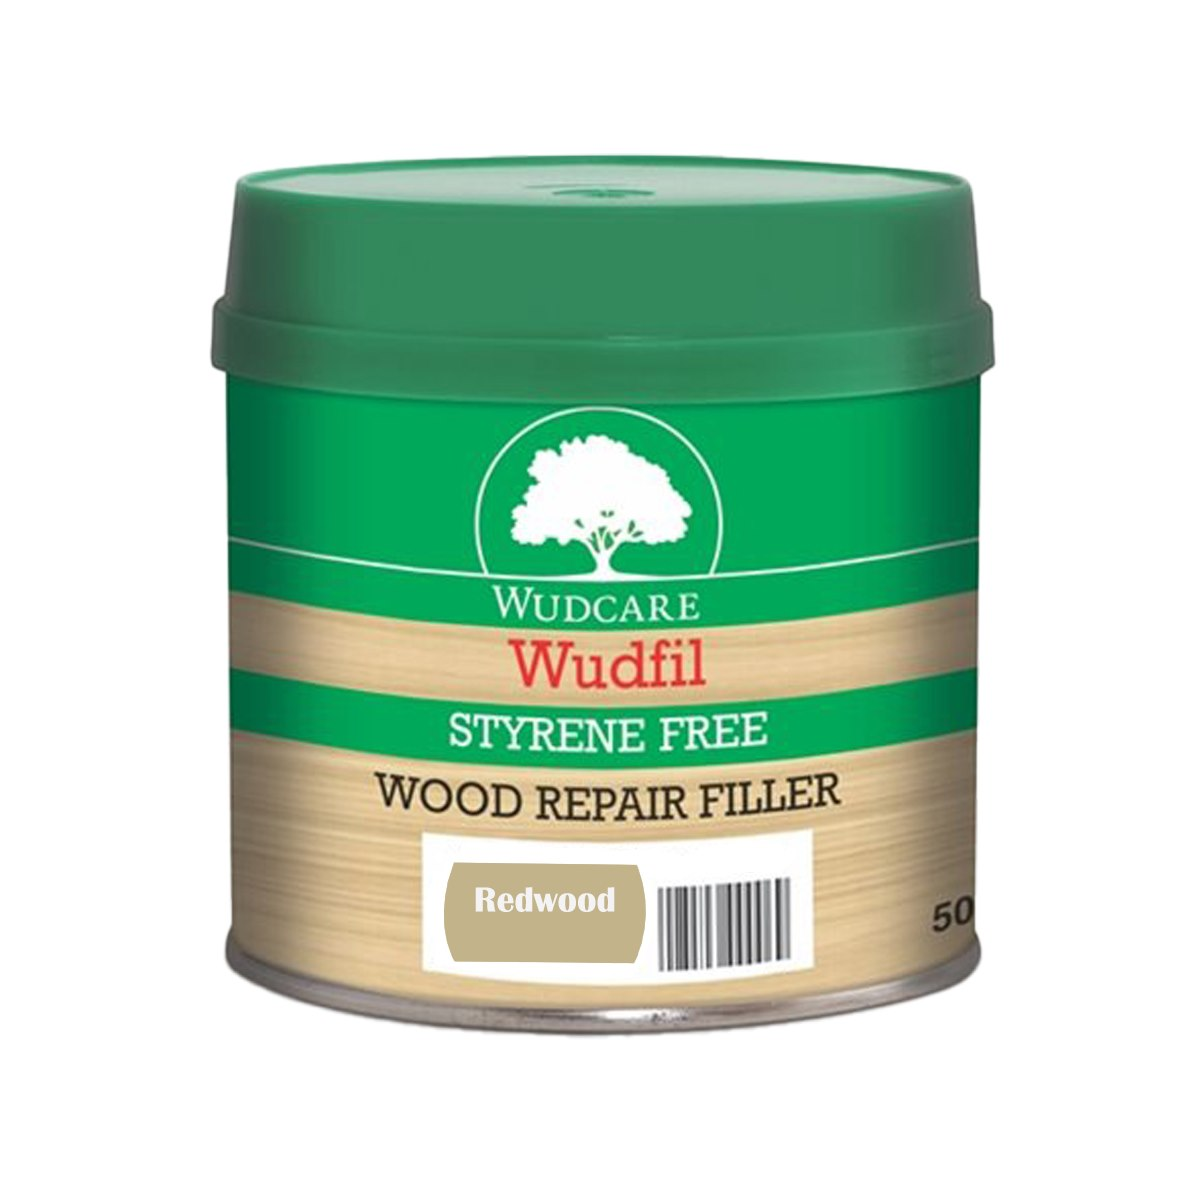 Wudcare Styrene Free Easy Stain Wudfil Wood Repair Filler Paste Redwood 500ml